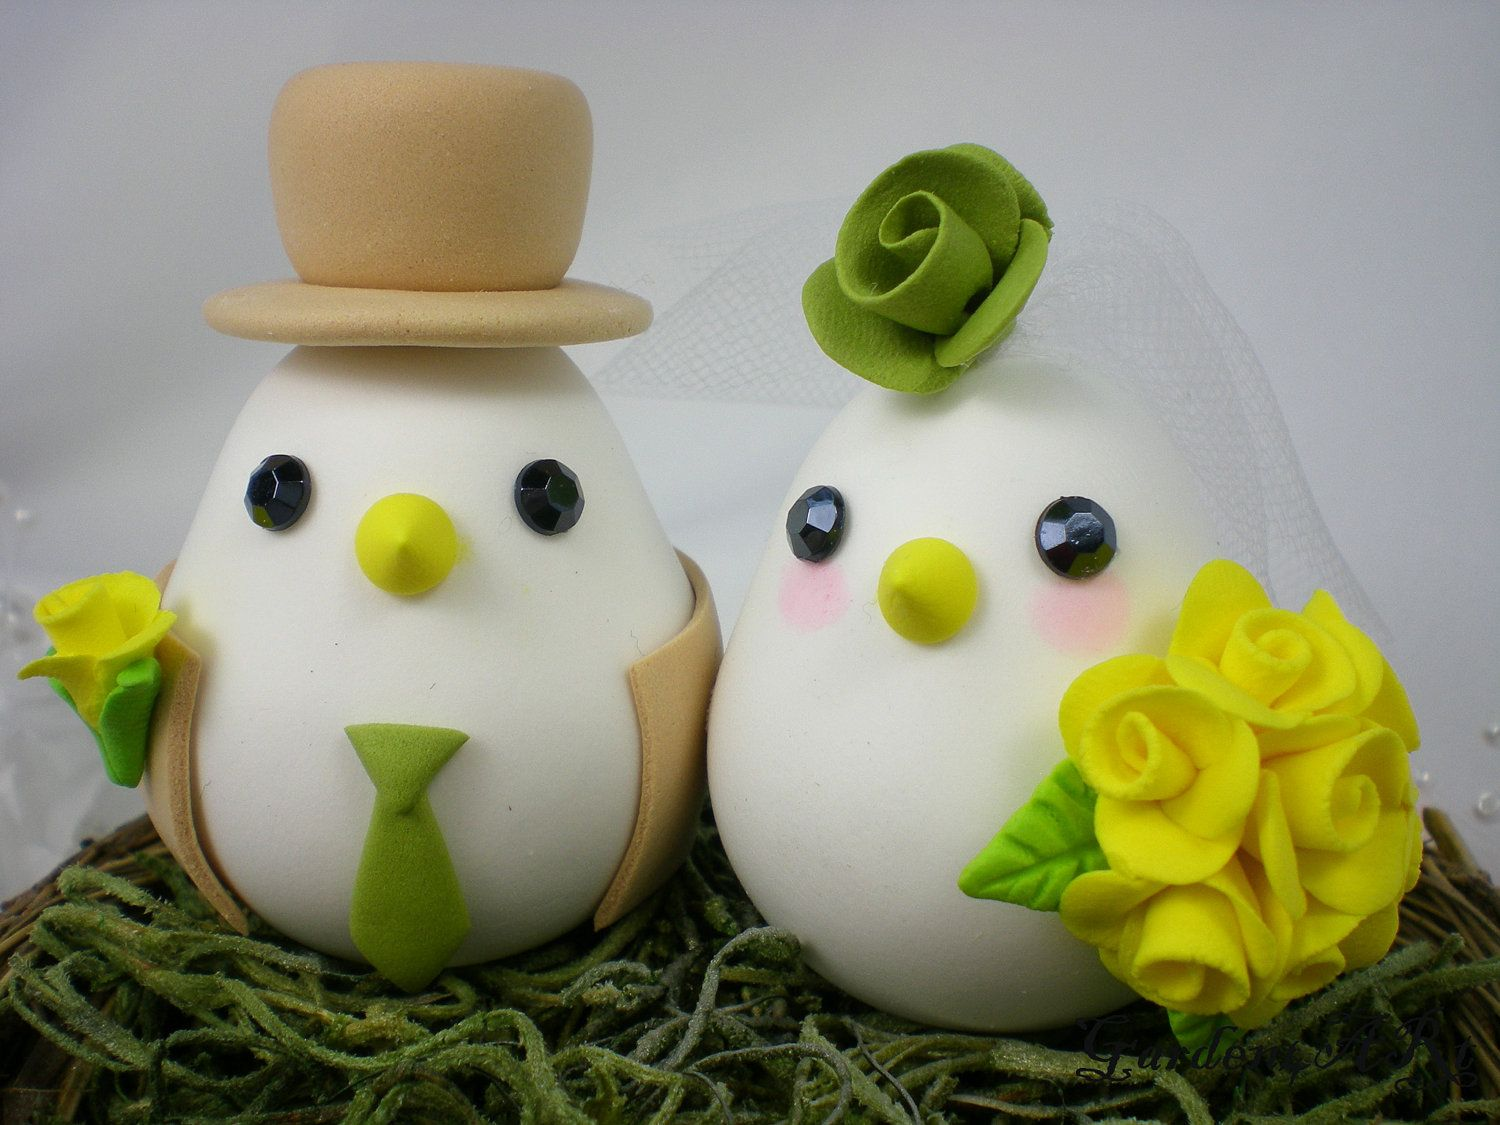 Custom Love Birds Wedding Cake Topper with Sweet Nest - the Bride Hold a Yellow Rose Bouquet(Choice of Color). $69.00, via Etsy.